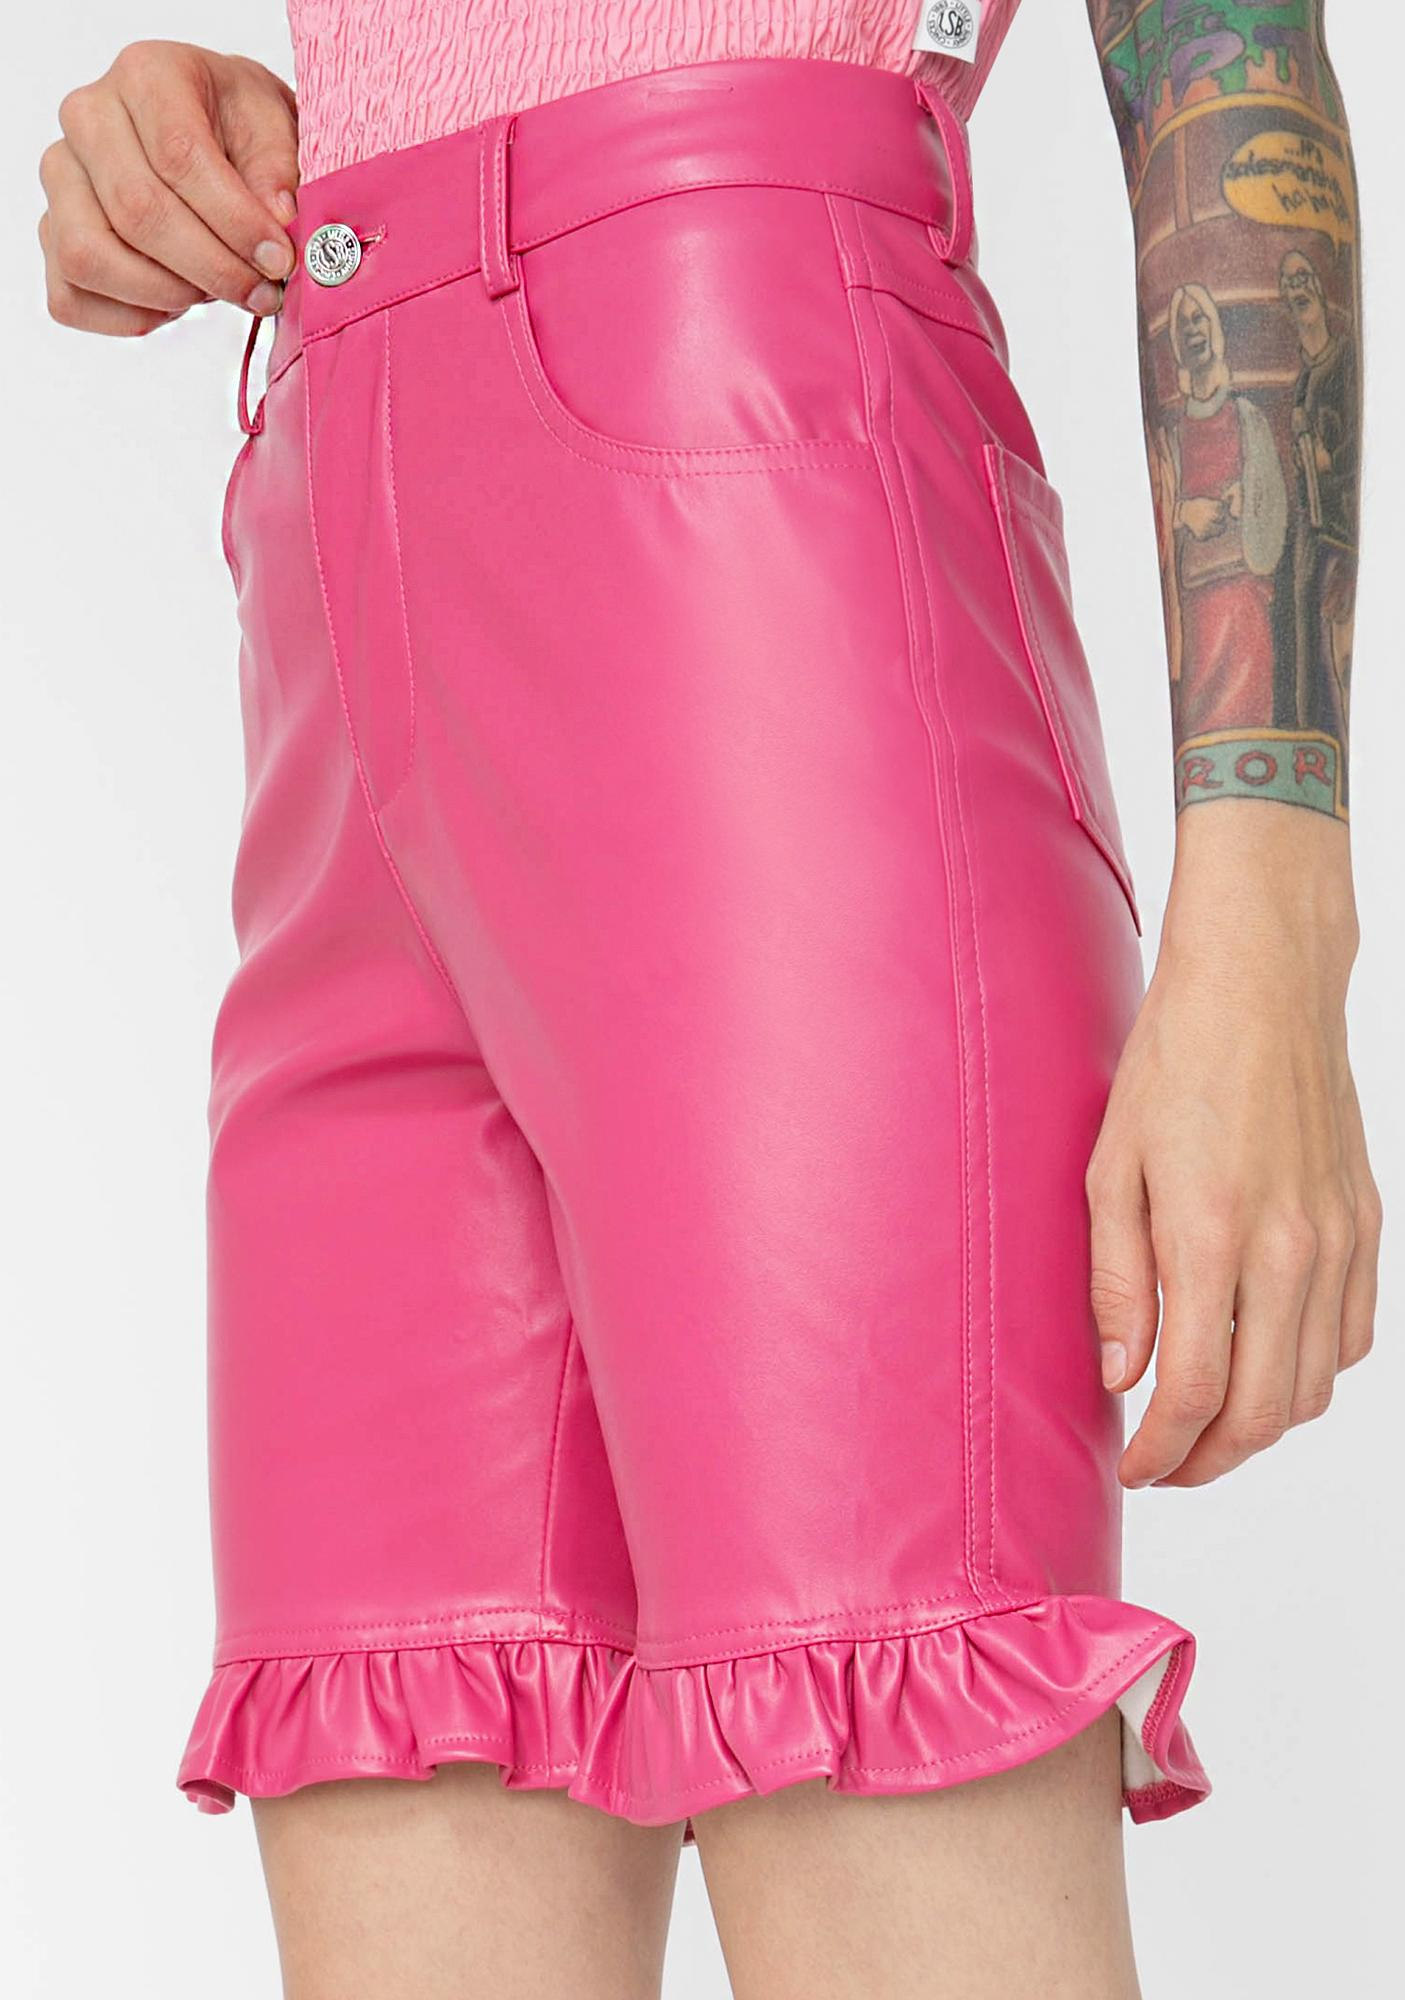 Little Sunny Bite Pink Fake Leather Short Pants